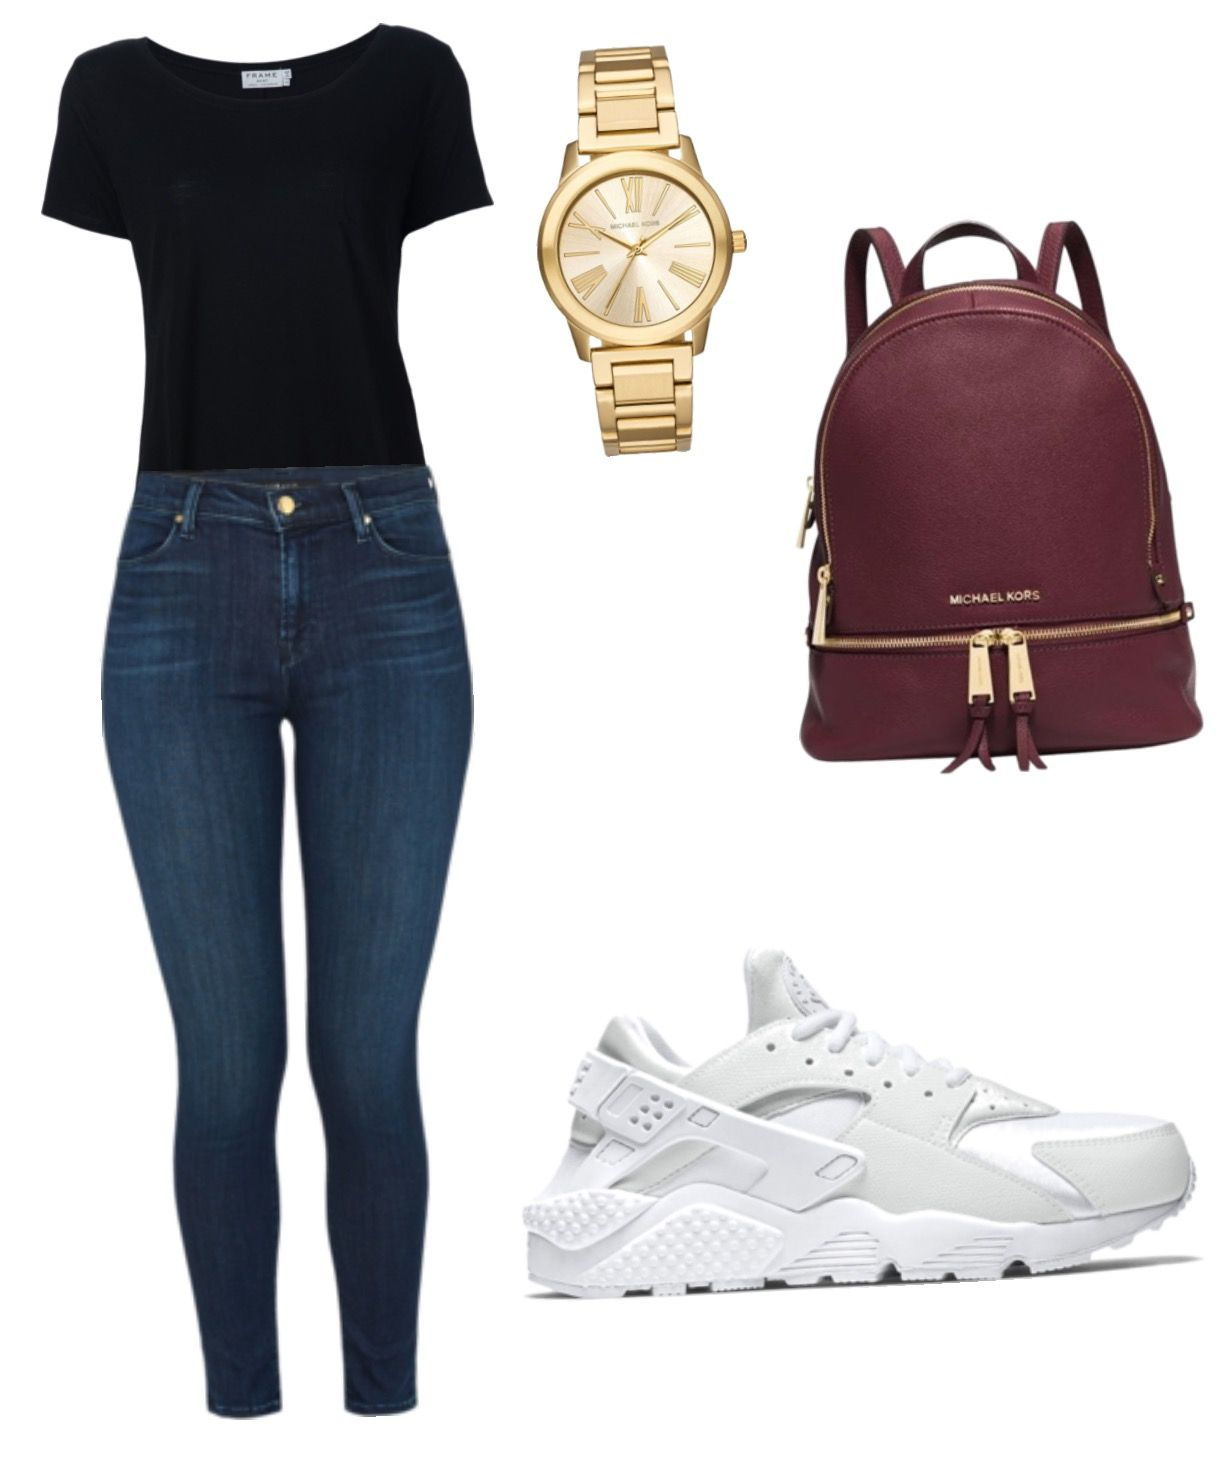 Pin by Hckkv on Huaraches outfit | Cute nike outfits ...